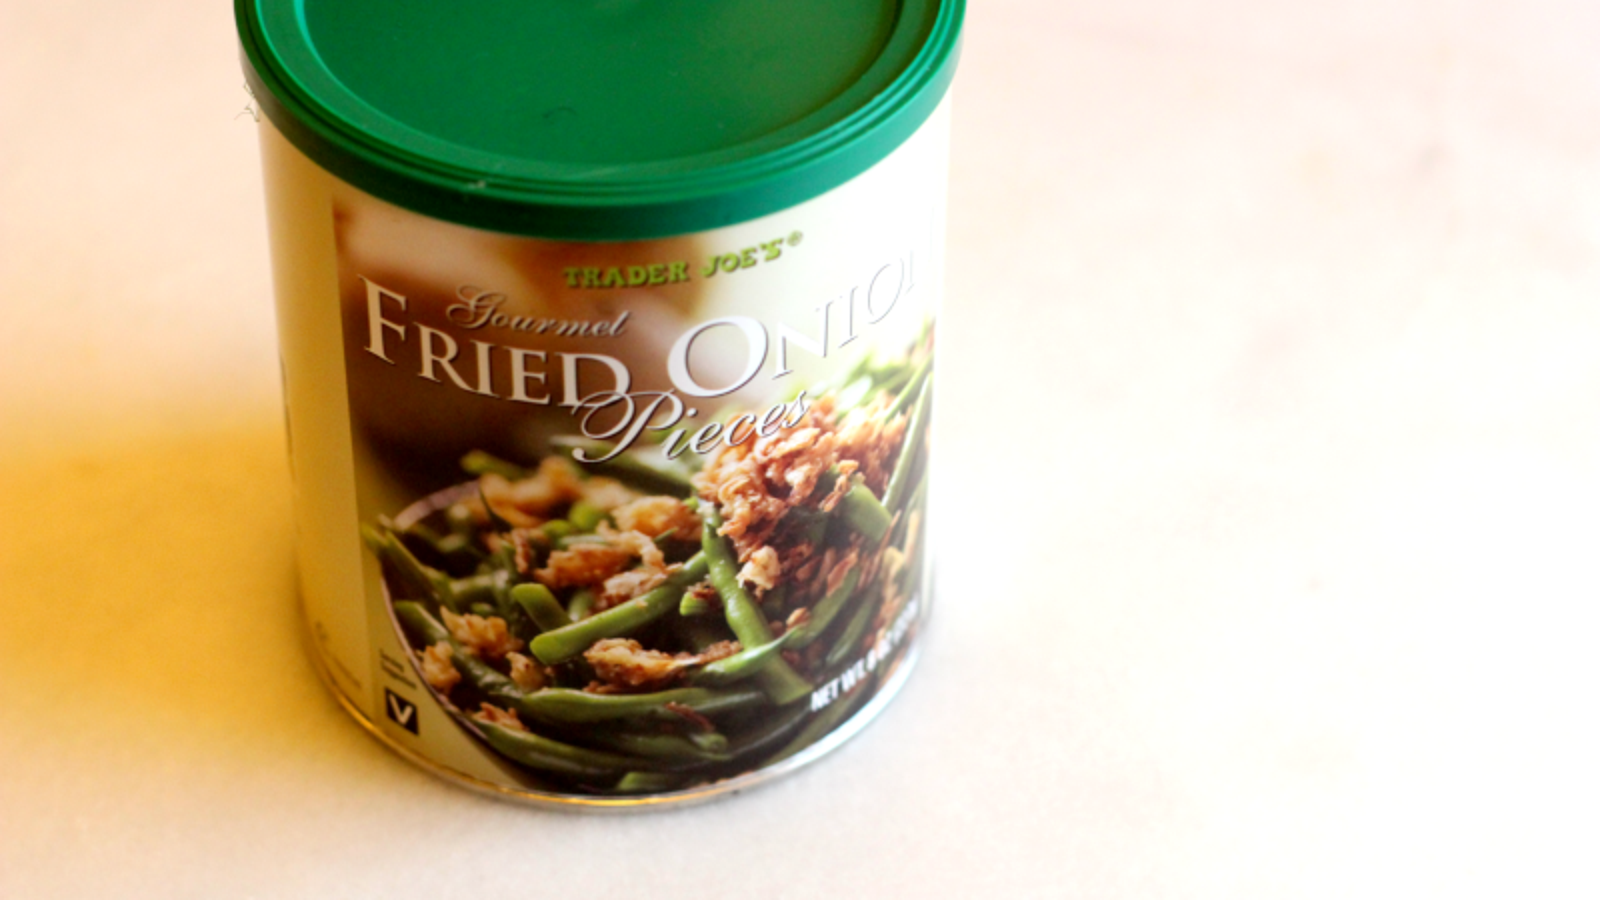 Gourmet Fried Onion Pieces ($2.99)